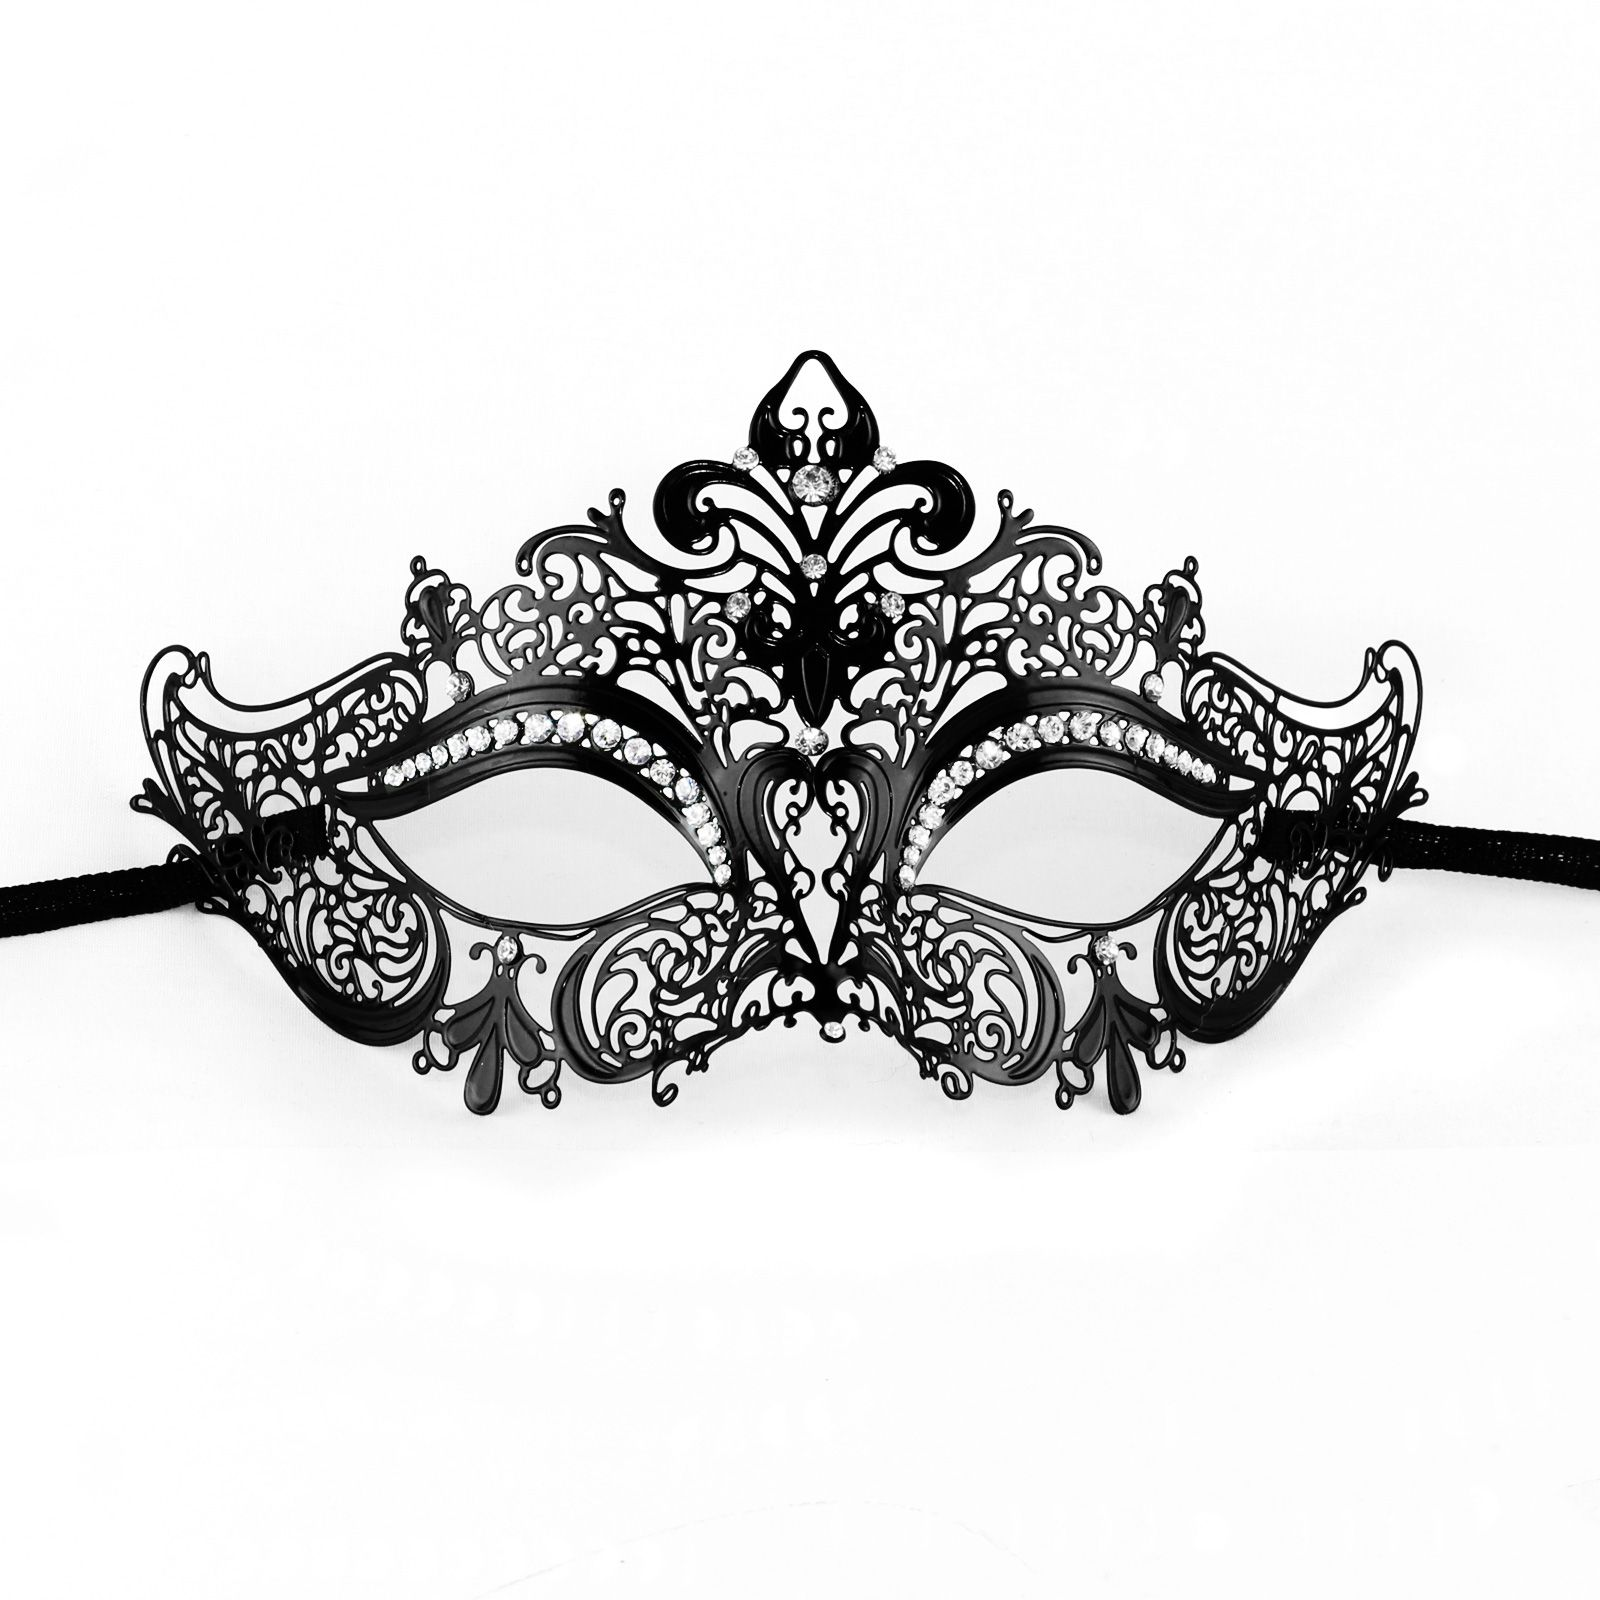 Masquerade mask masquerade mask vine mask metal lace masquerade - Venetian Design Mardi Gras Metal Masquerade Mask Dress Up Party Ball